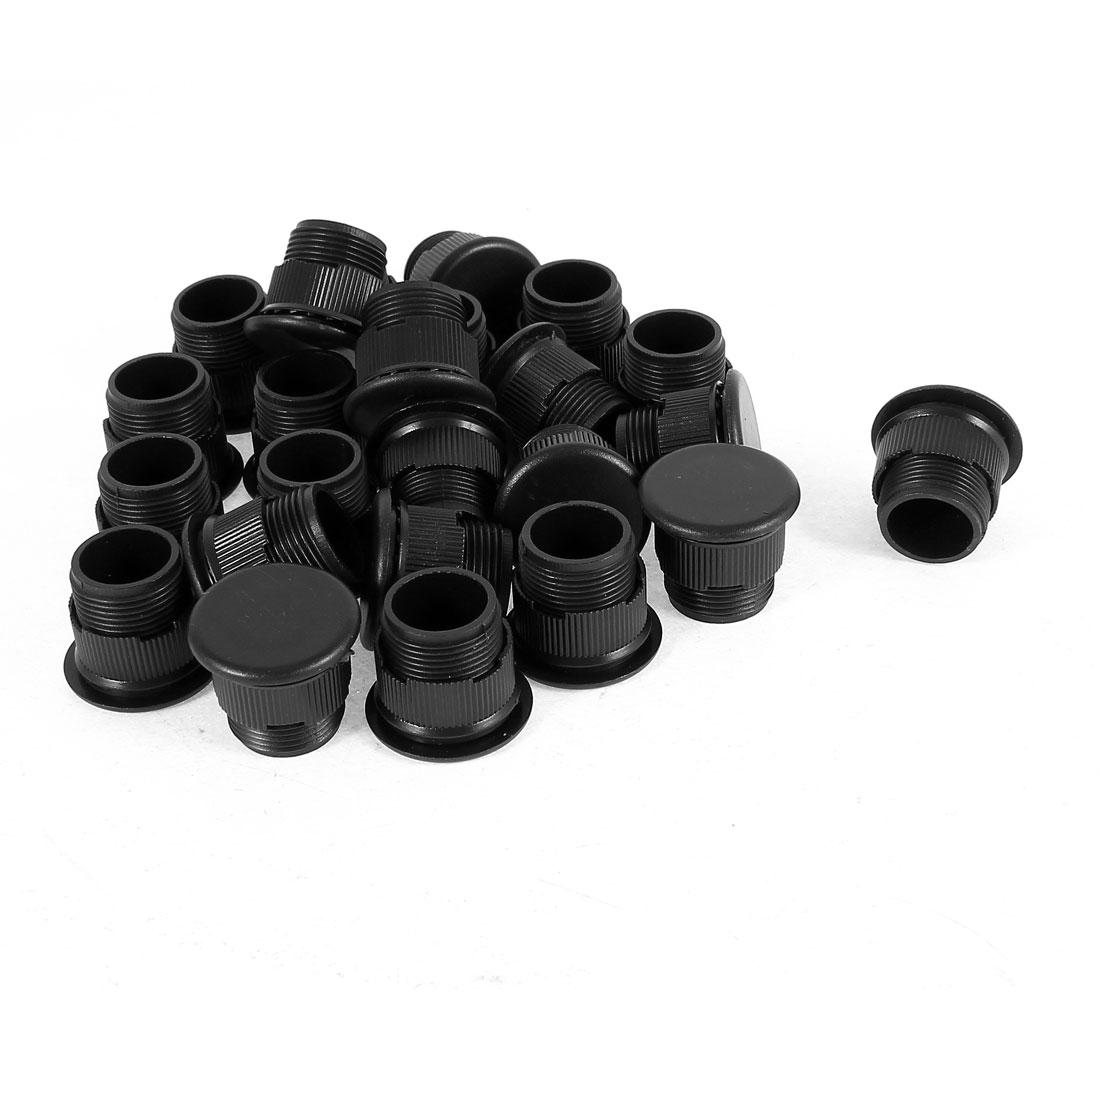 24 Pcs Black Plastic Push Button Switch 16mm Mount Hole Panel Plug Cover Cap